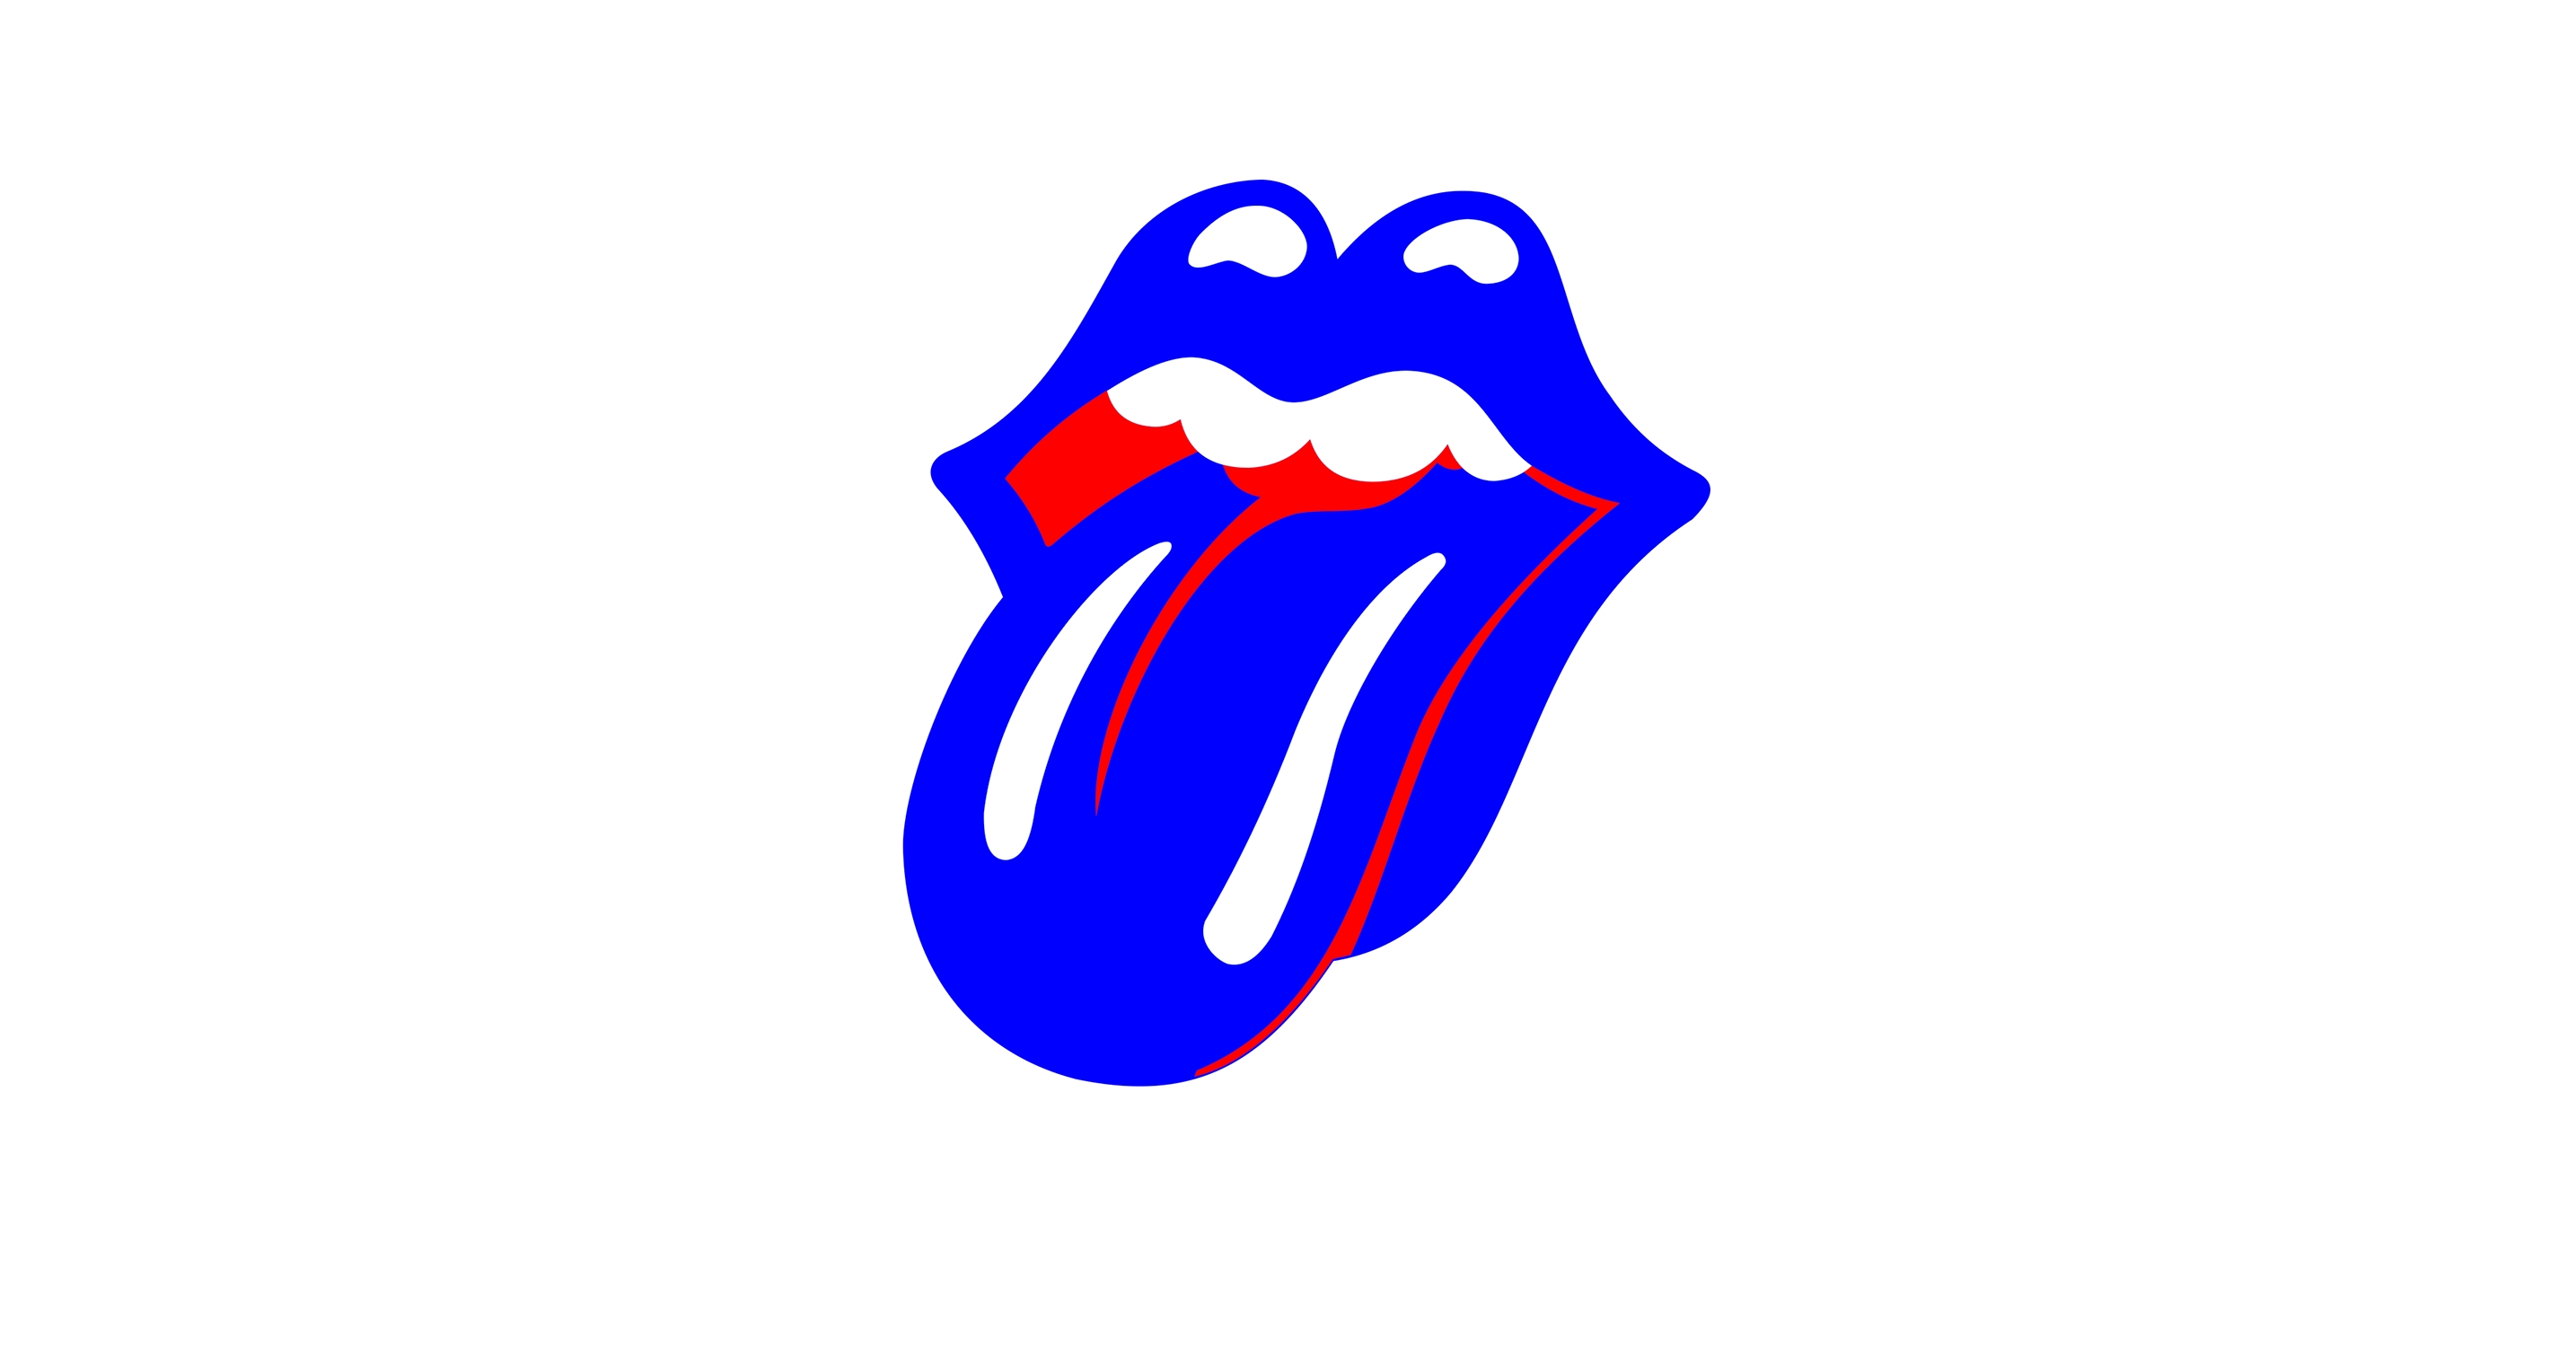 2869x1510 Celebrity clipart rolling stones